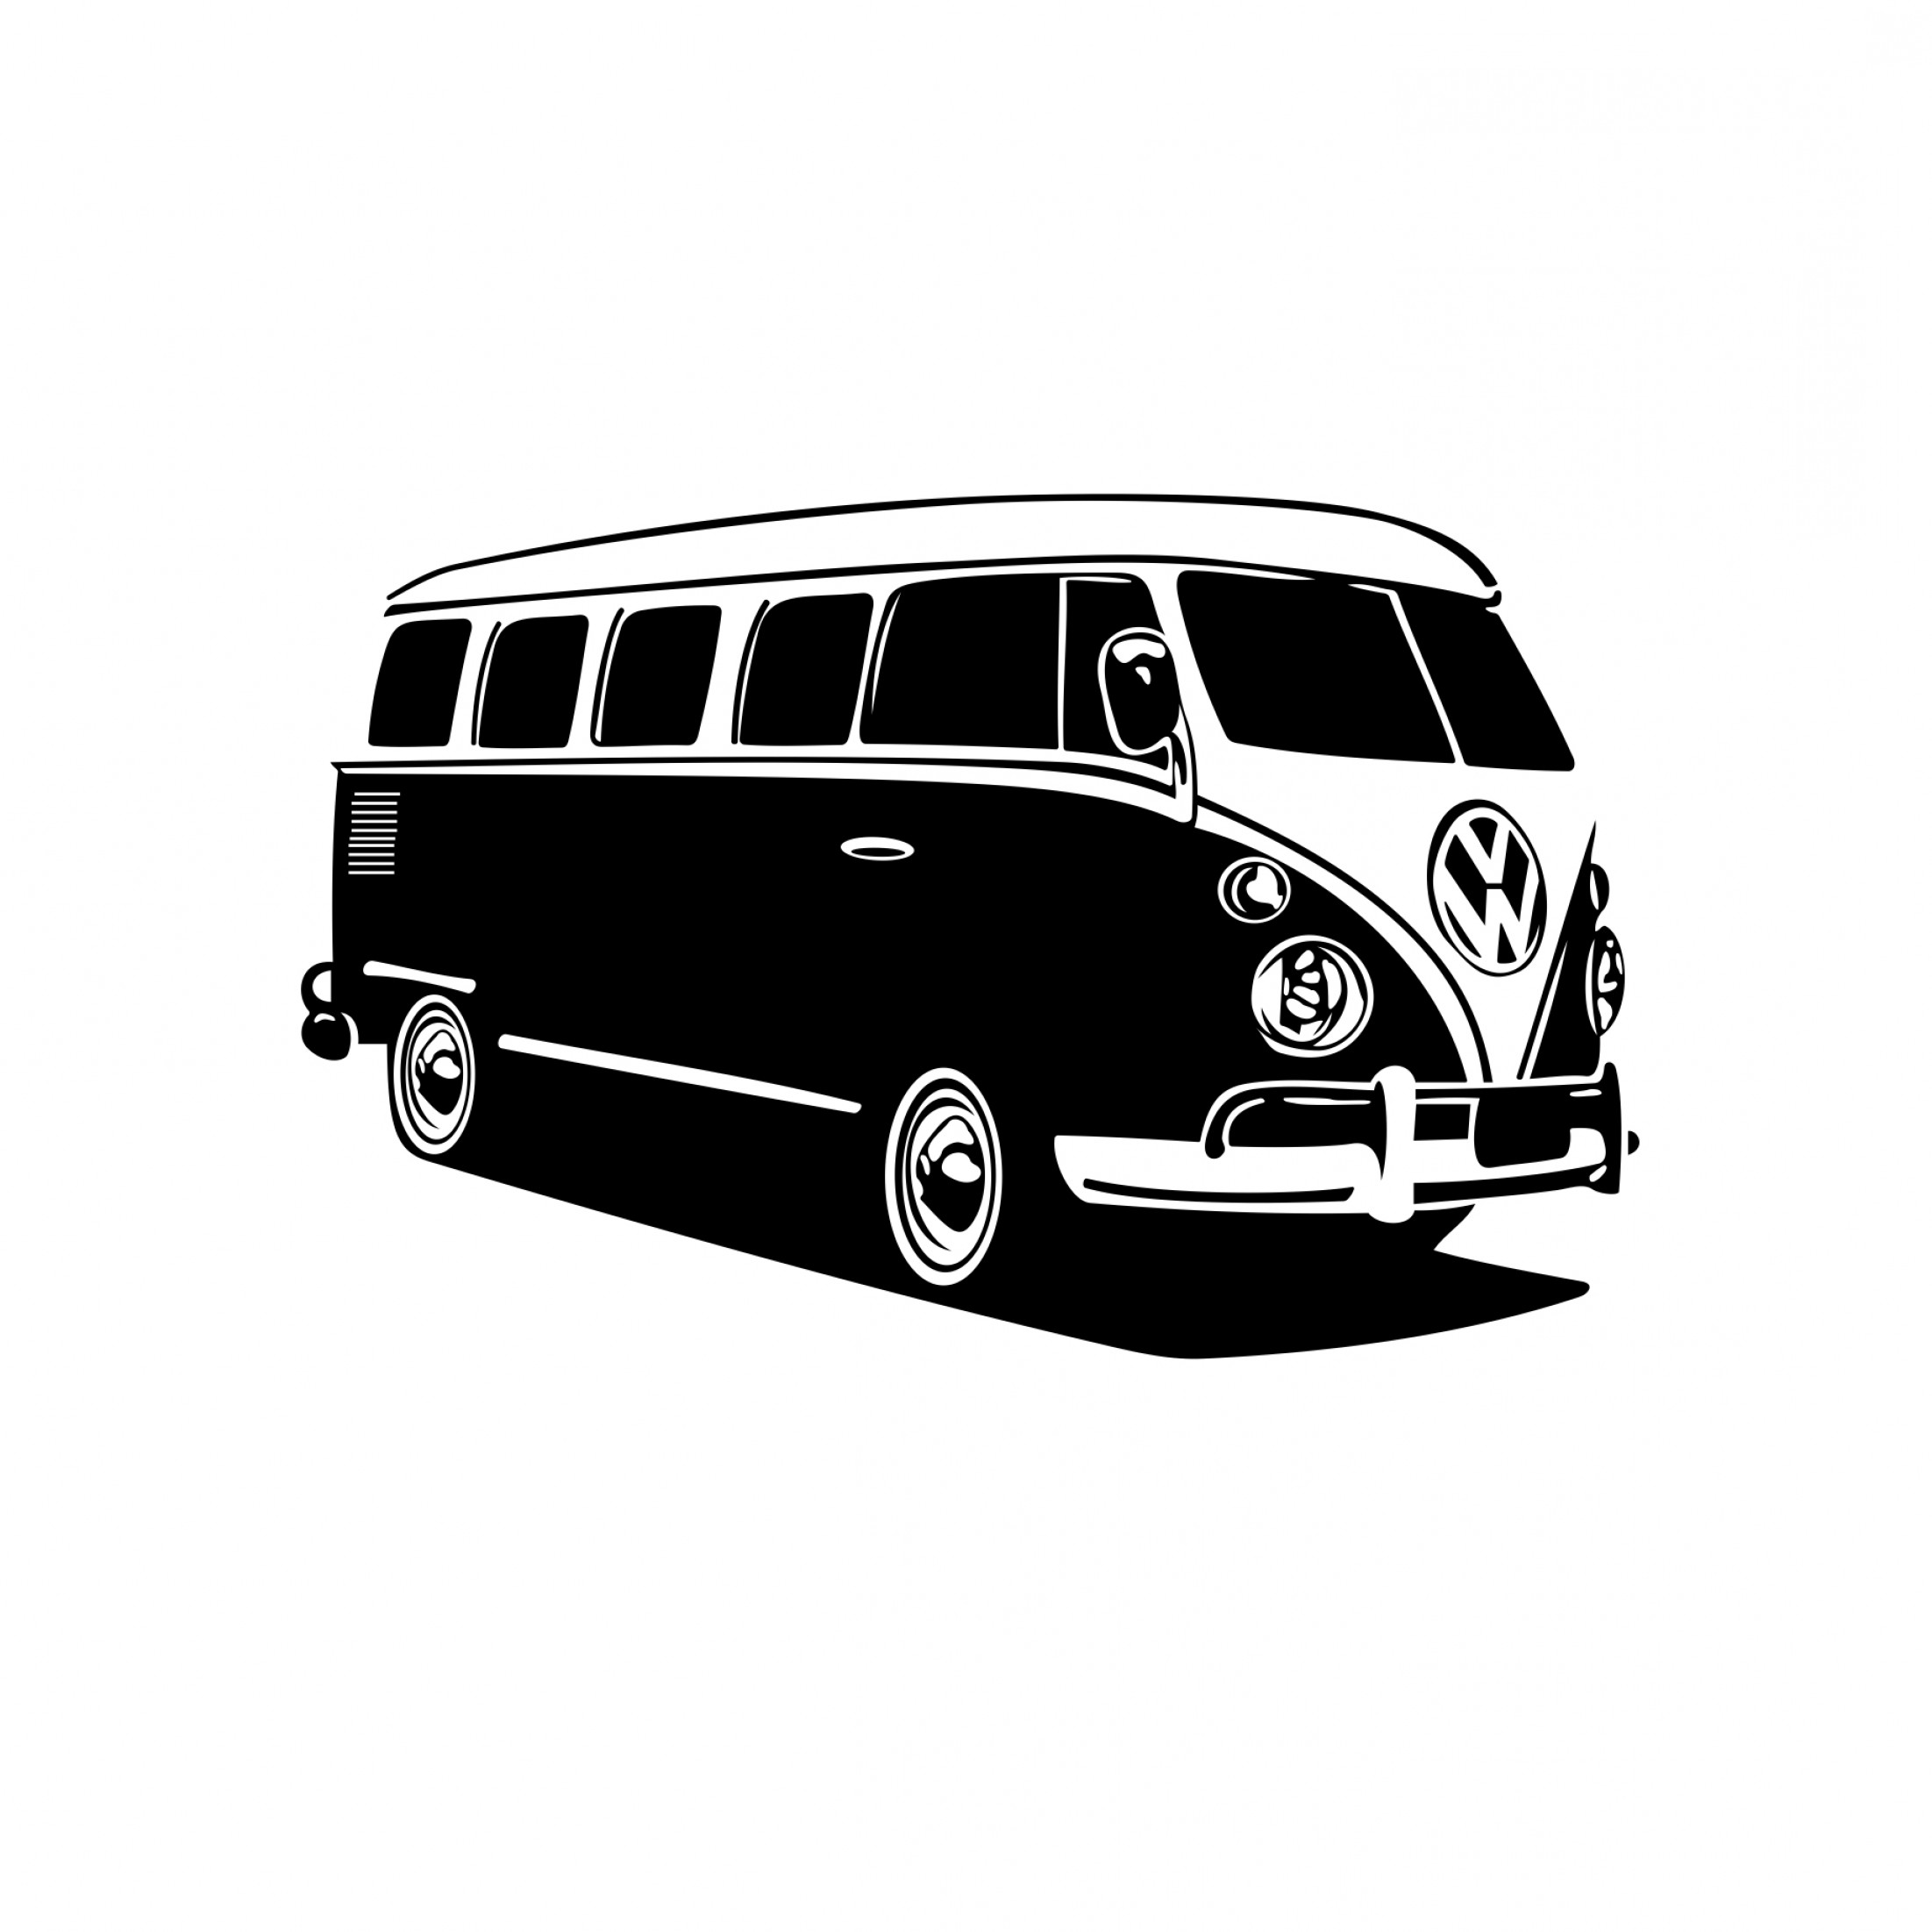 VW Vector Graphic: Volkswagen Bus Car Design Svg Dxf Eps Png Cdr Ai Pdf Vector Art Clipart Instant Download Digital Cut Files